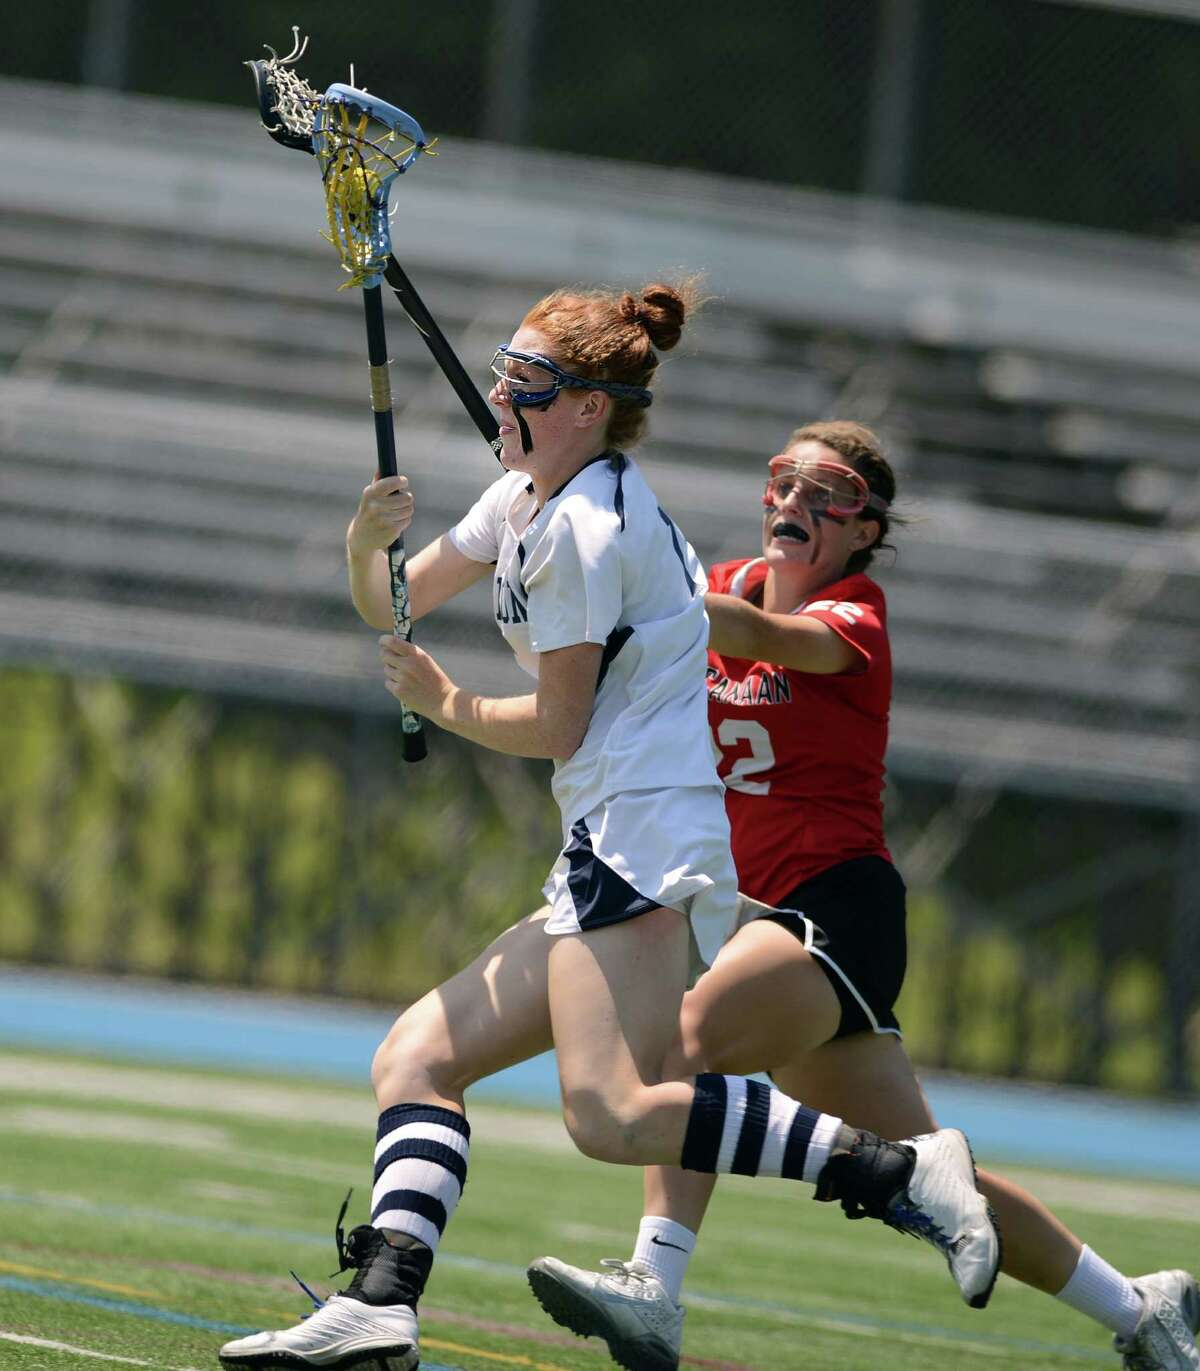 Wilton's Shannon Quinlan controls the ball as New Canaan's Elizabeth Burke defends Saturday, June 14, 2014, during the Class M Girls Lacrosse final at Bunnell High School in Stratford, Conn.